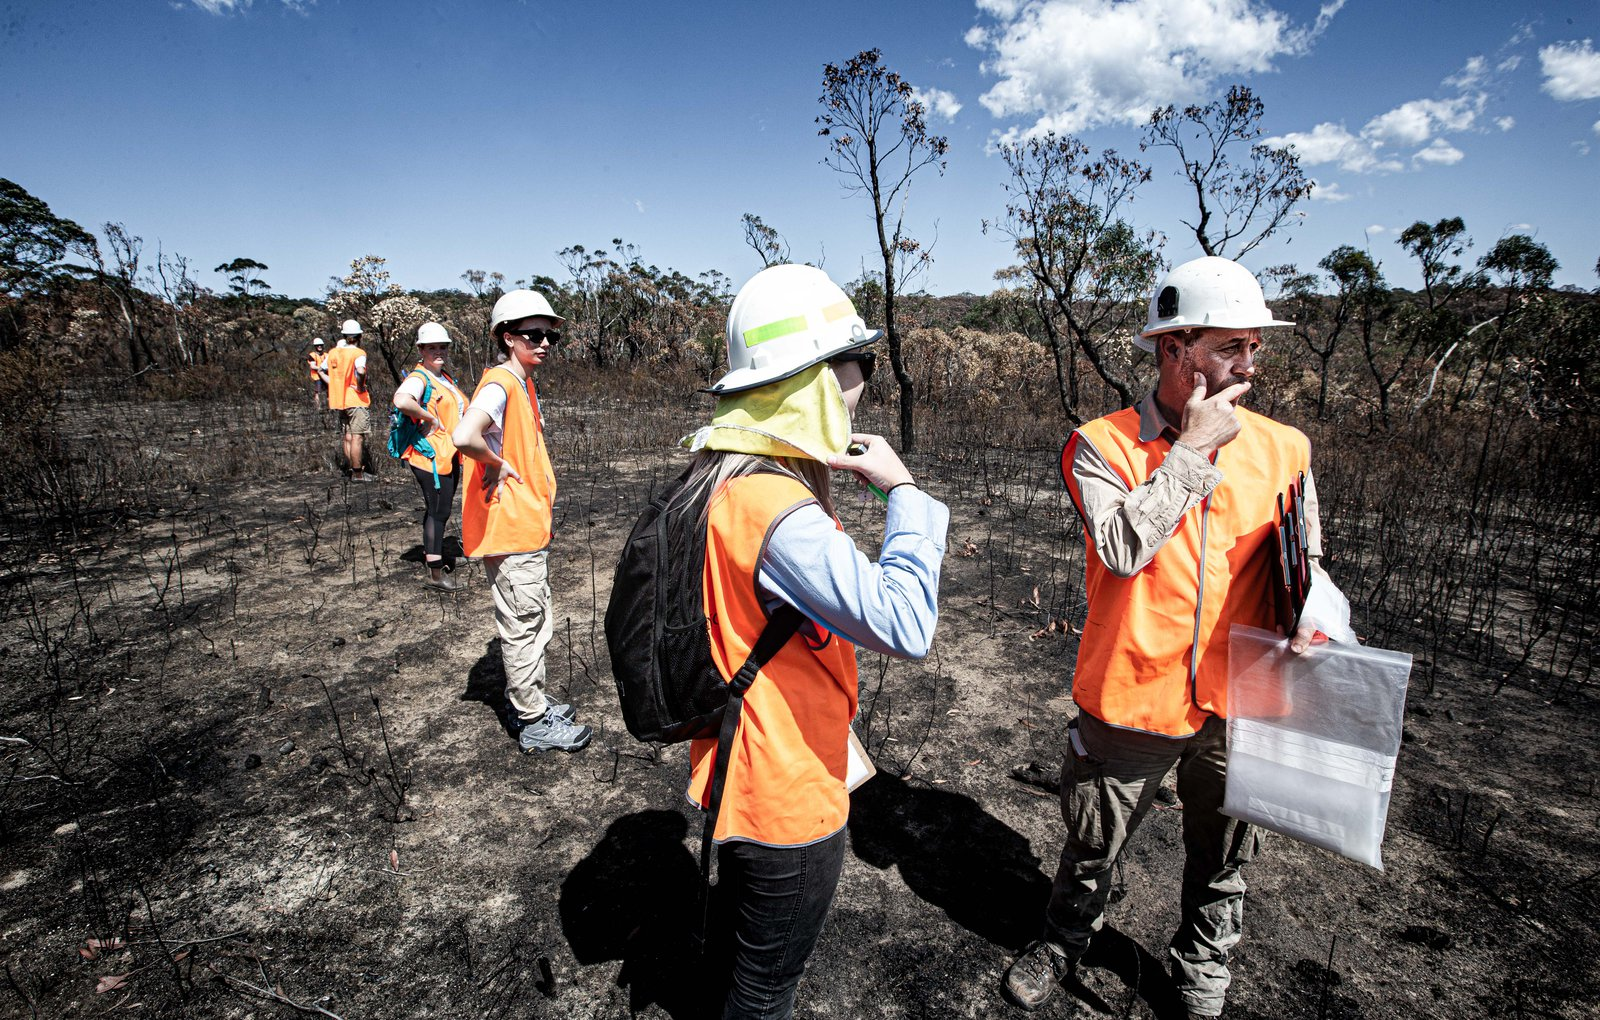 NSW Bushfire Hub - Finalists, 2021 NSW Environment, Energy and Science (DPIE) Eureka Prize for Applied Environmental Research